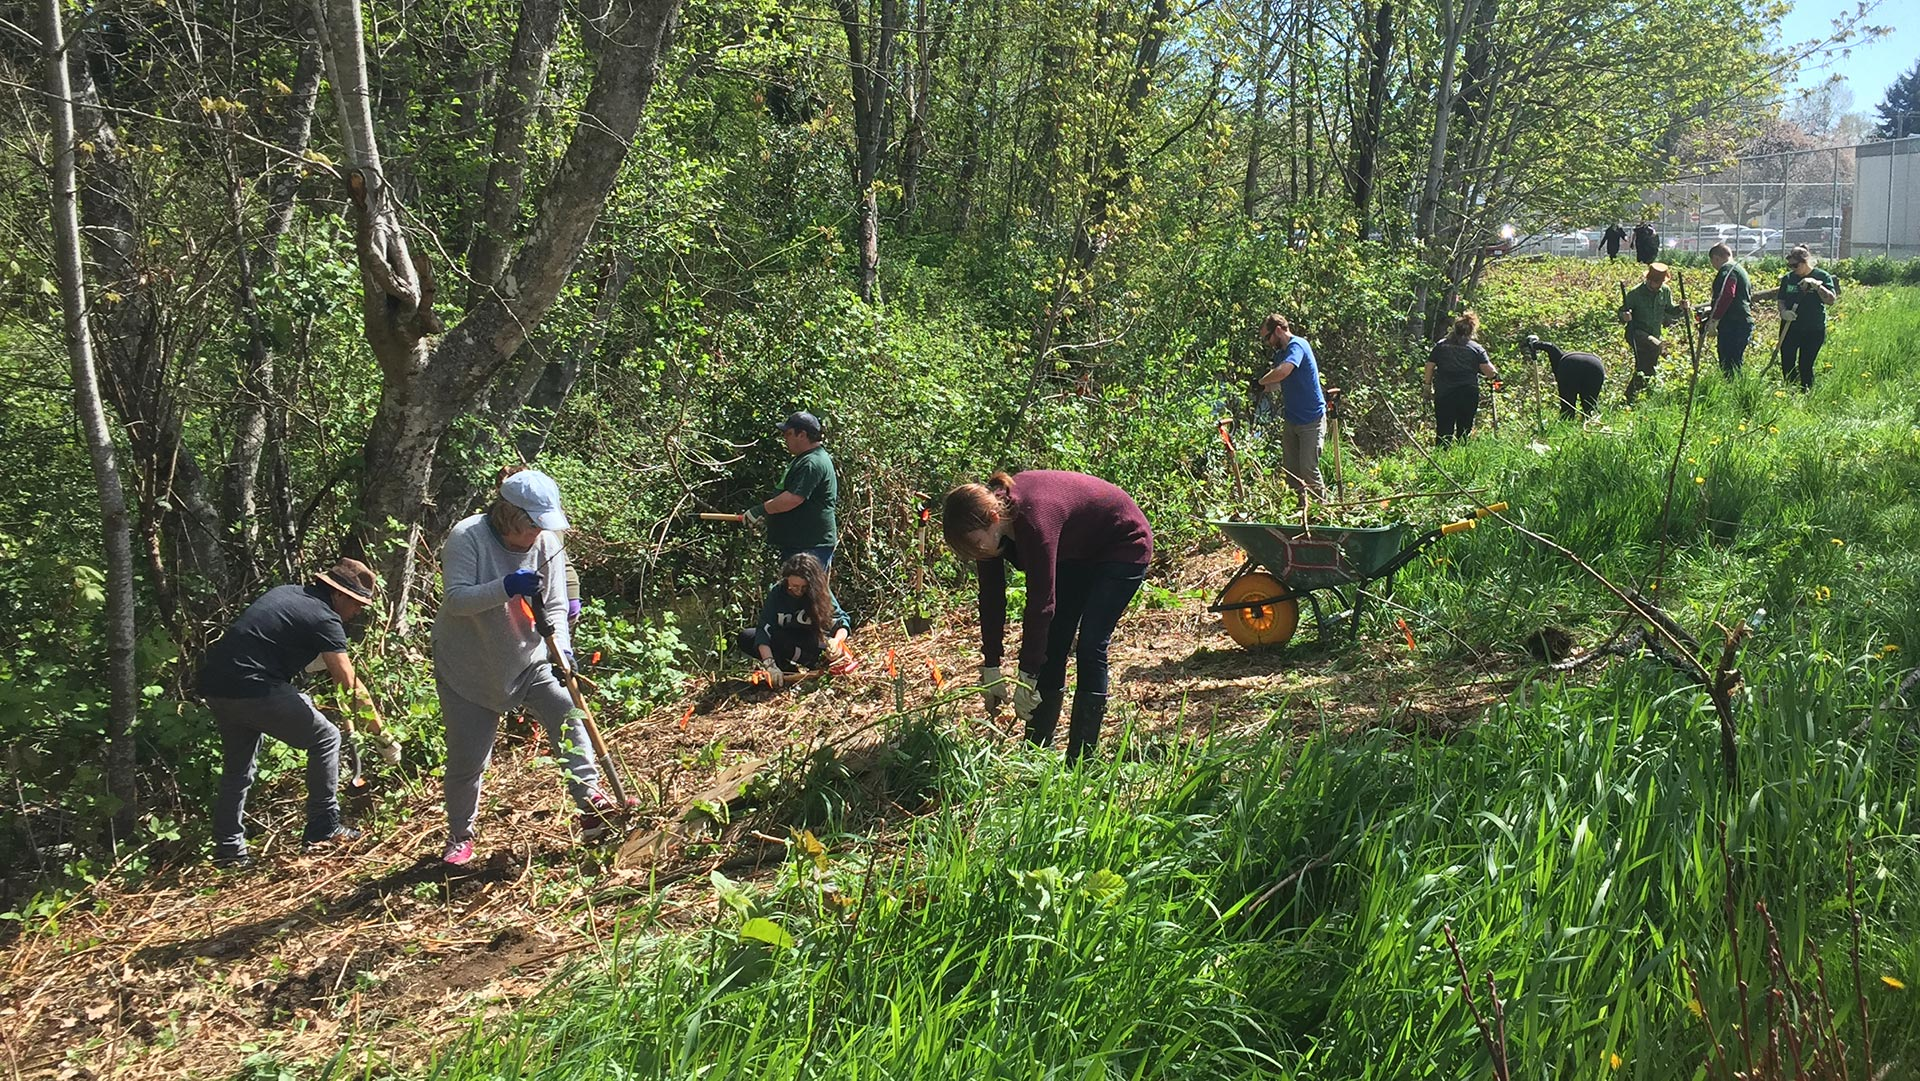 Volunteers working at restoration efforts - Georgia Greenway